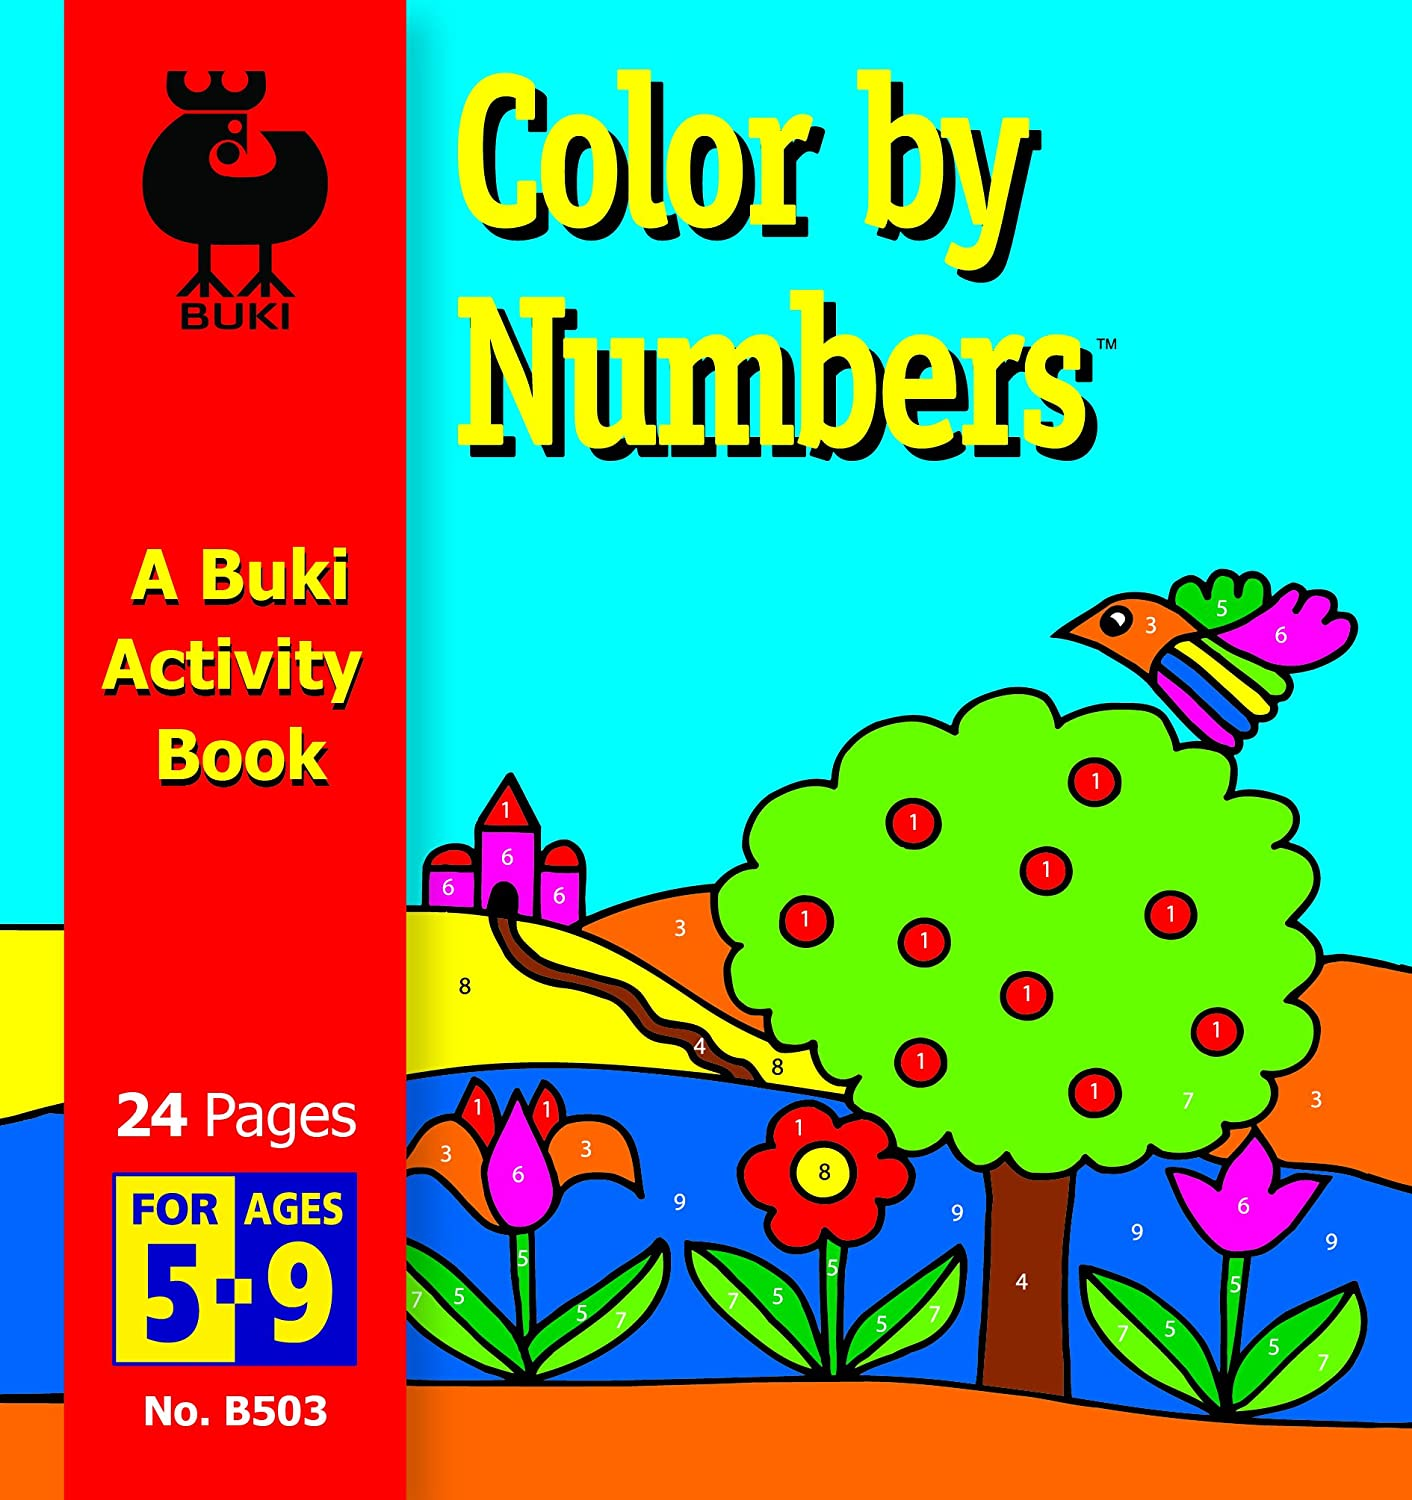 Amazon.com: Buki Small Activity Book COLOR BY NUMBERS (B503): Toys ...